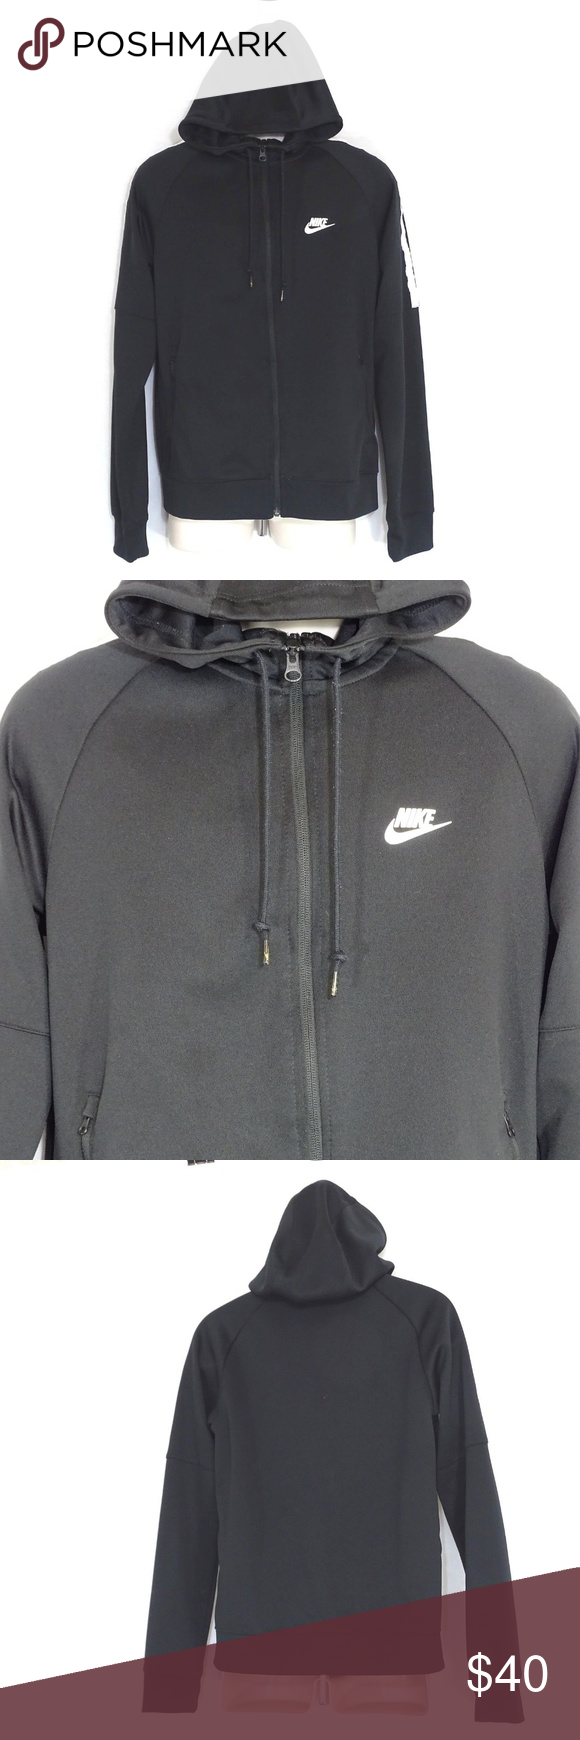 b66764c6a4e4 Nike Tribute Hooded Track Jacket Men Size M ITEM DESCRIPTION  Nike ...